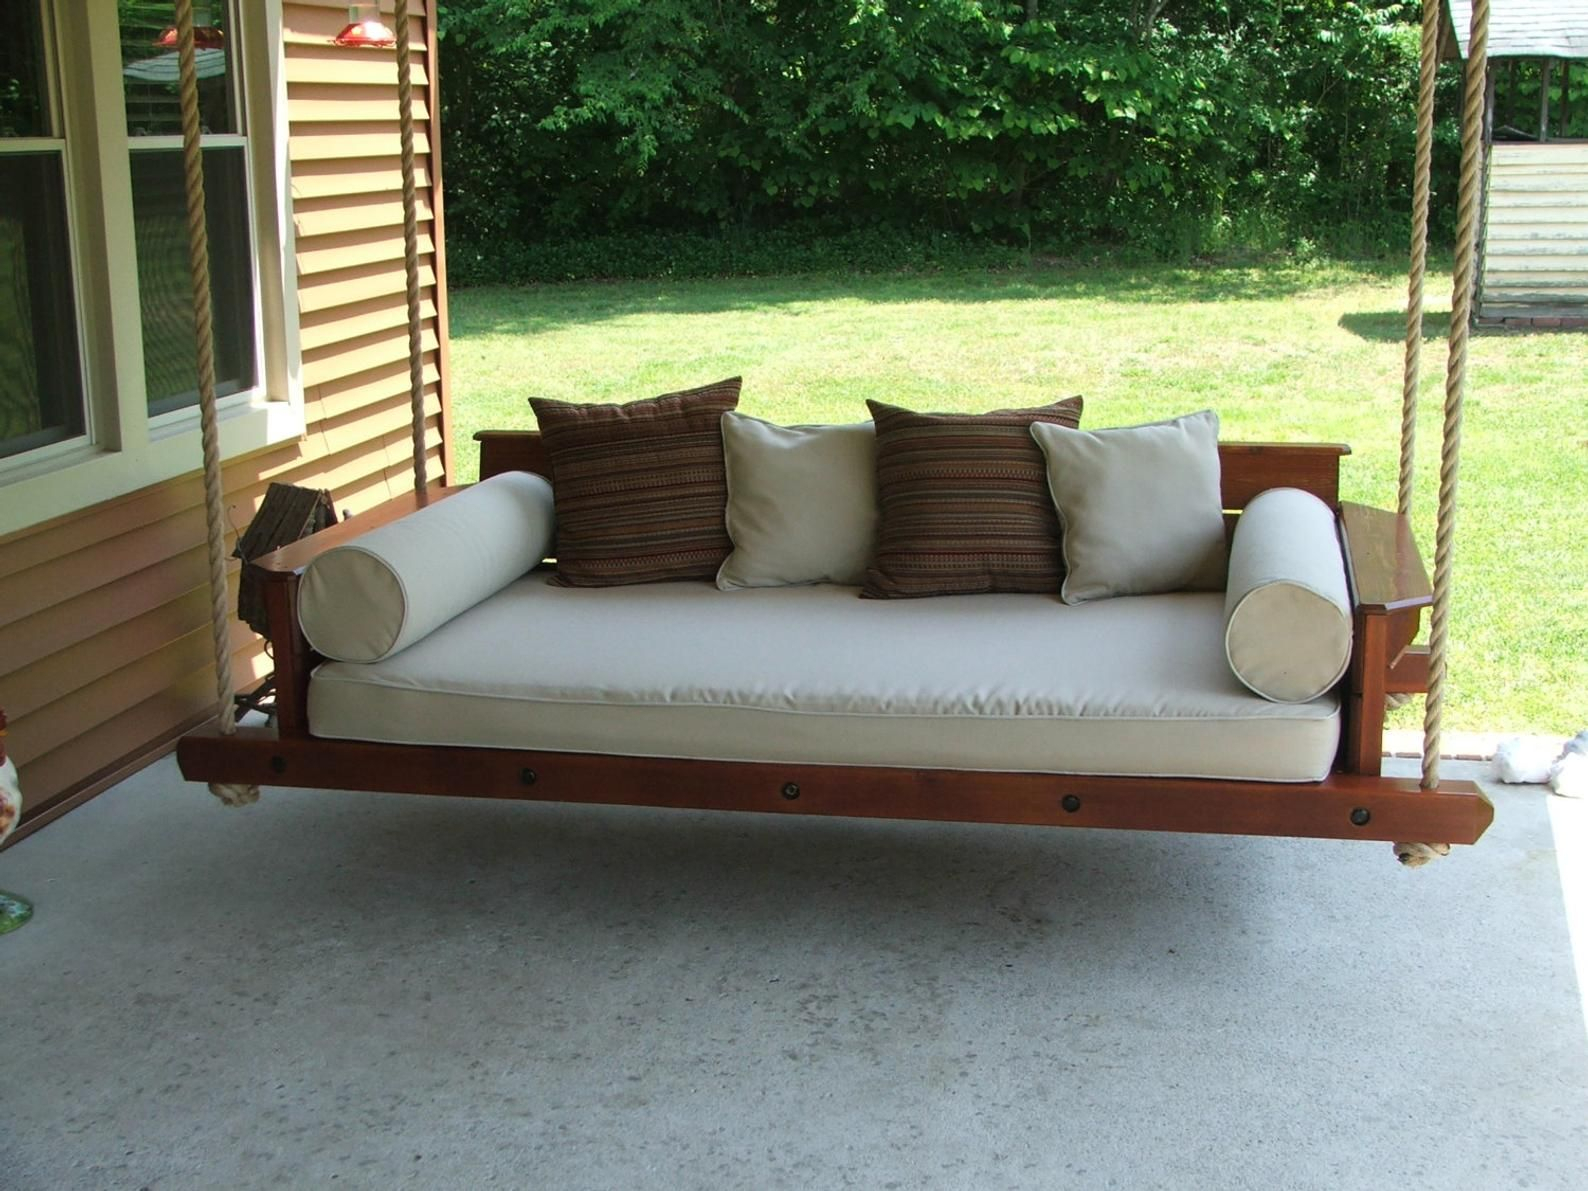 Porch Swing/bed | Porch Bed Swing Plans, Porch Bed, Porch Swing Throughout Outdoor Porch Swings (View 15 of 25)